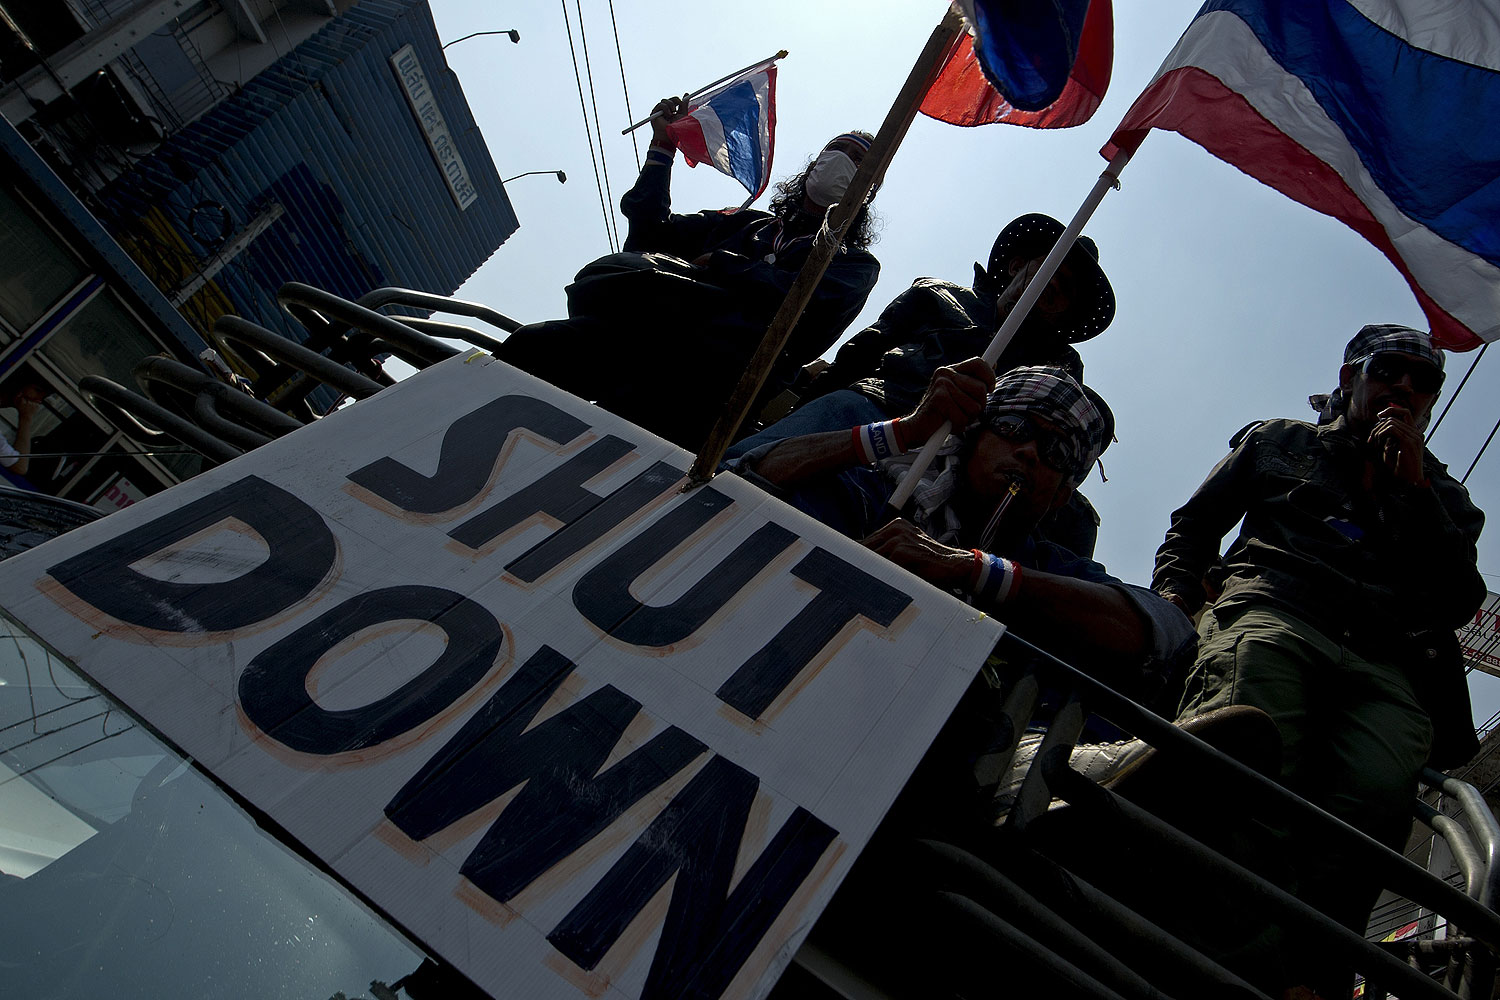 Thai anti-government protesters wave national flags as they parade during a rally in Bangkok on Jan. 24, 2014